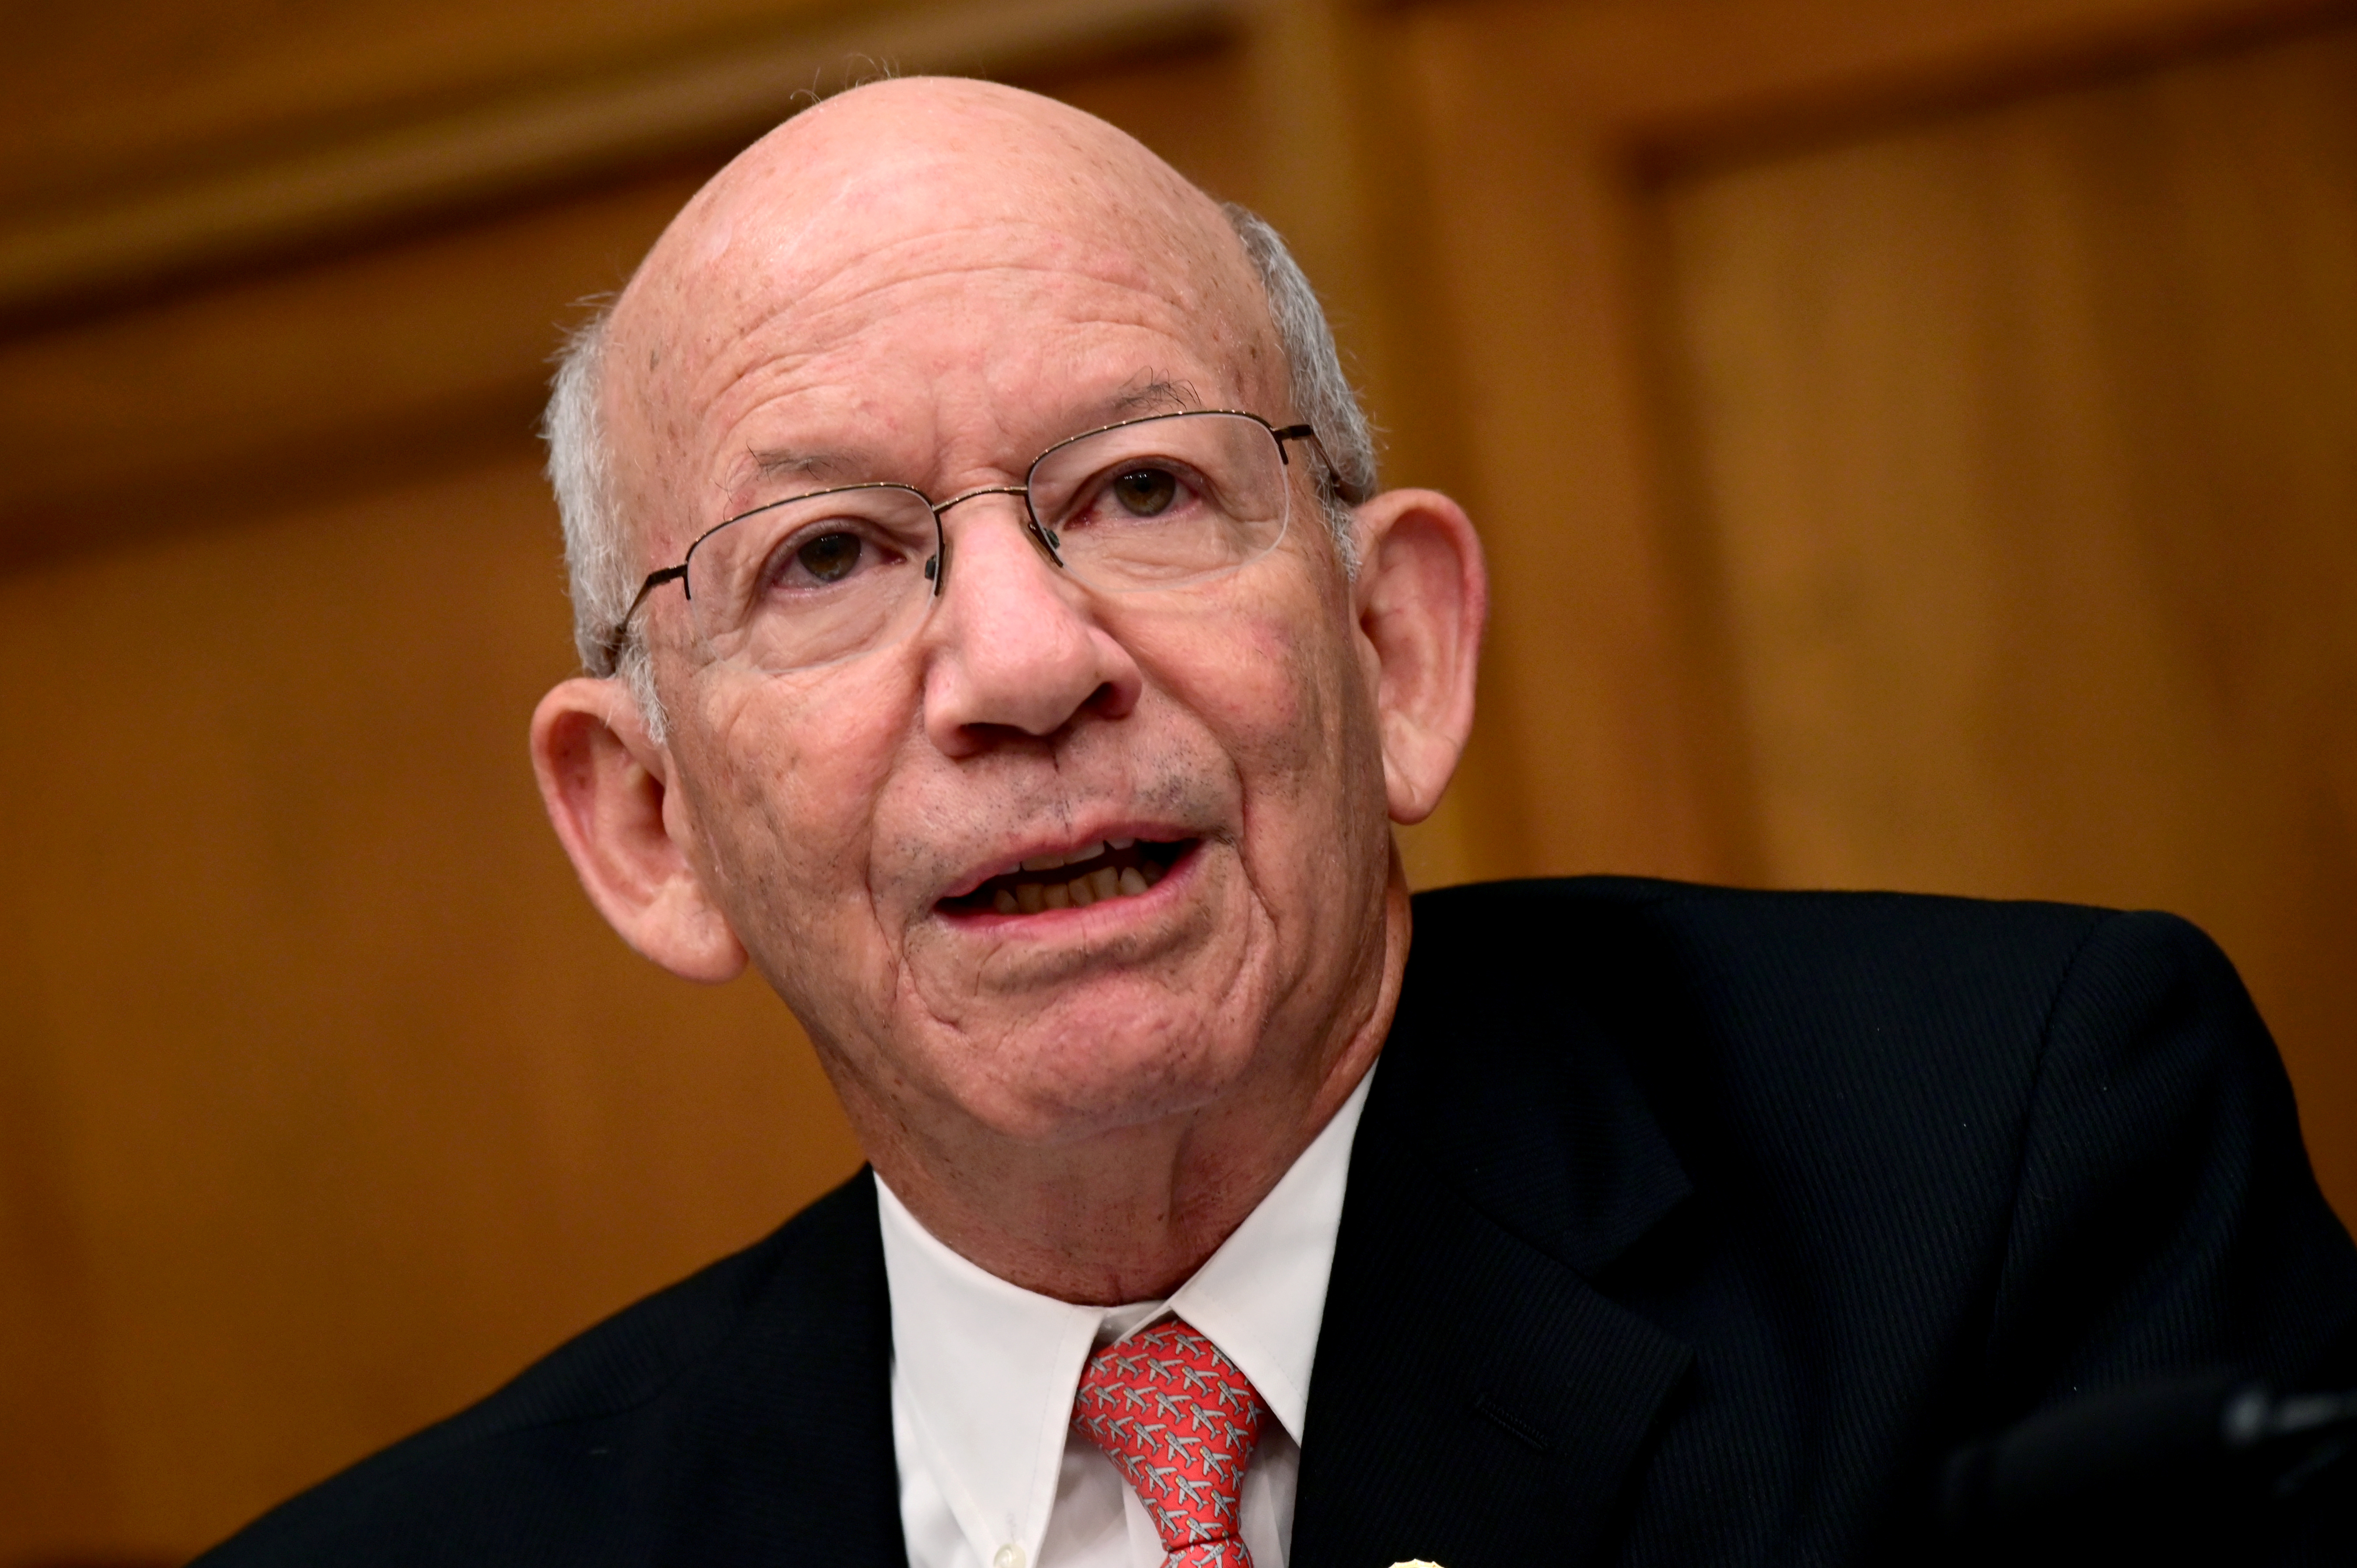 Representative Peter DeFazio (D-OR) speaks during a House Transportation and Infrastructure Aviation Subcommittee hearing in Washington, D.C., U.S., July 17, 2019. REUTERS/Erin Scott